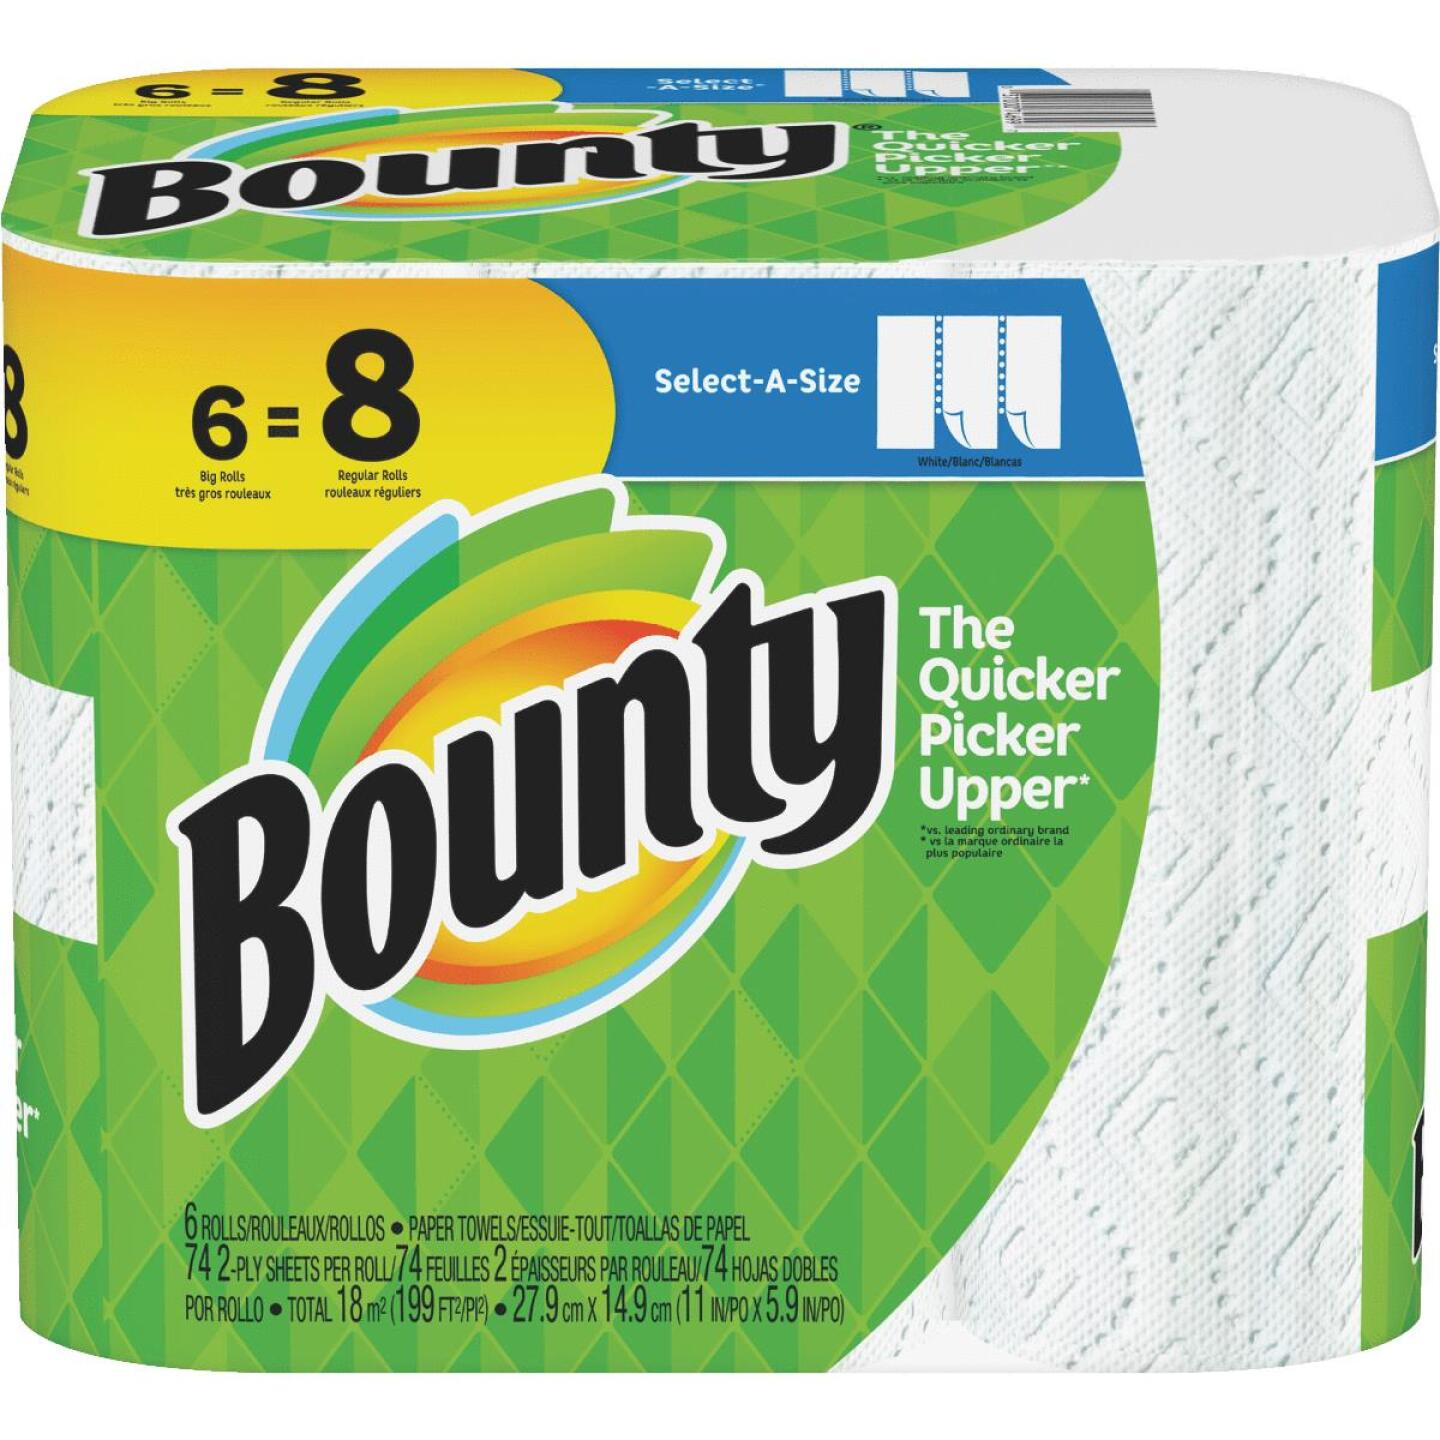 Bounty Select-A-Size Paper Towel (6 Roll) Image 1